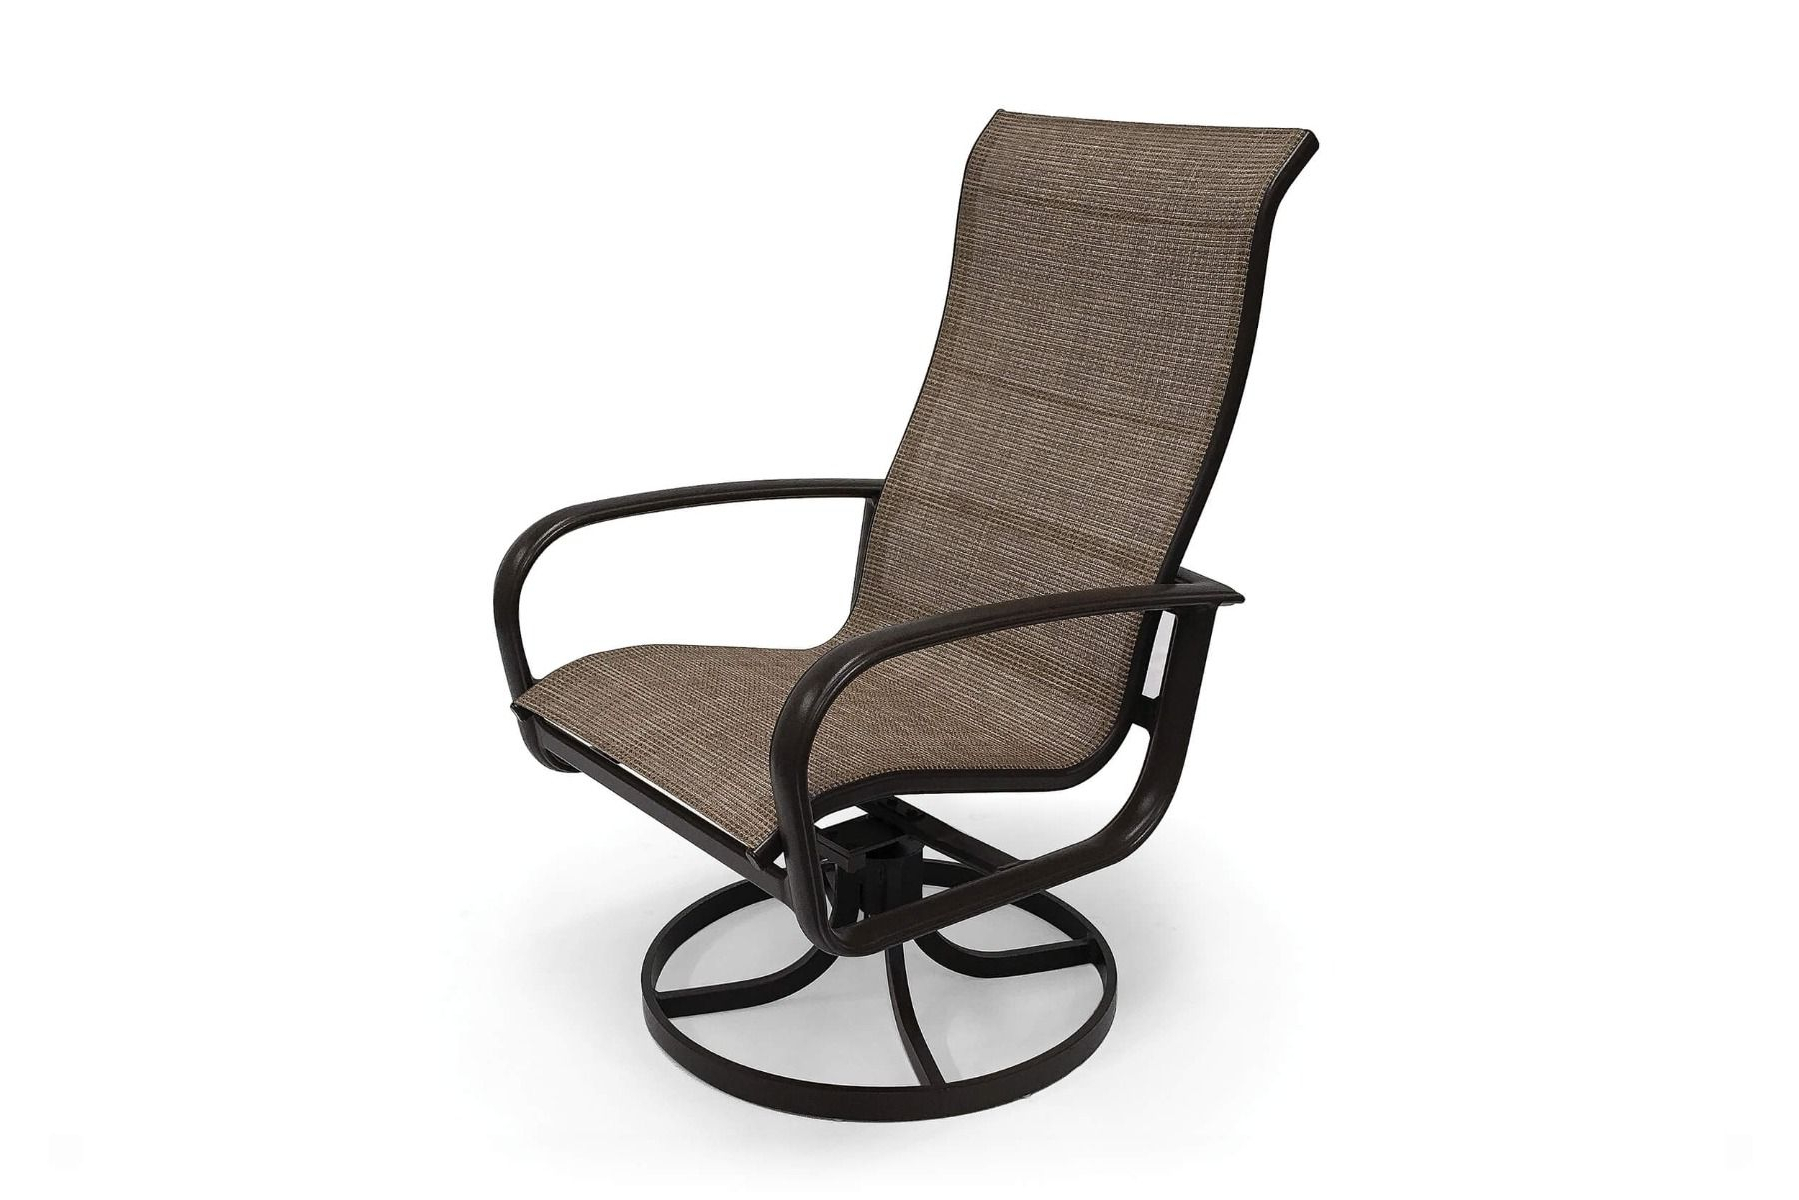 Savoy Sling High Back Swivel Tilt Chat Chair (2pk) Pertaining To Favorite Sling High Back Swivel Chairs (View 10 of 30)